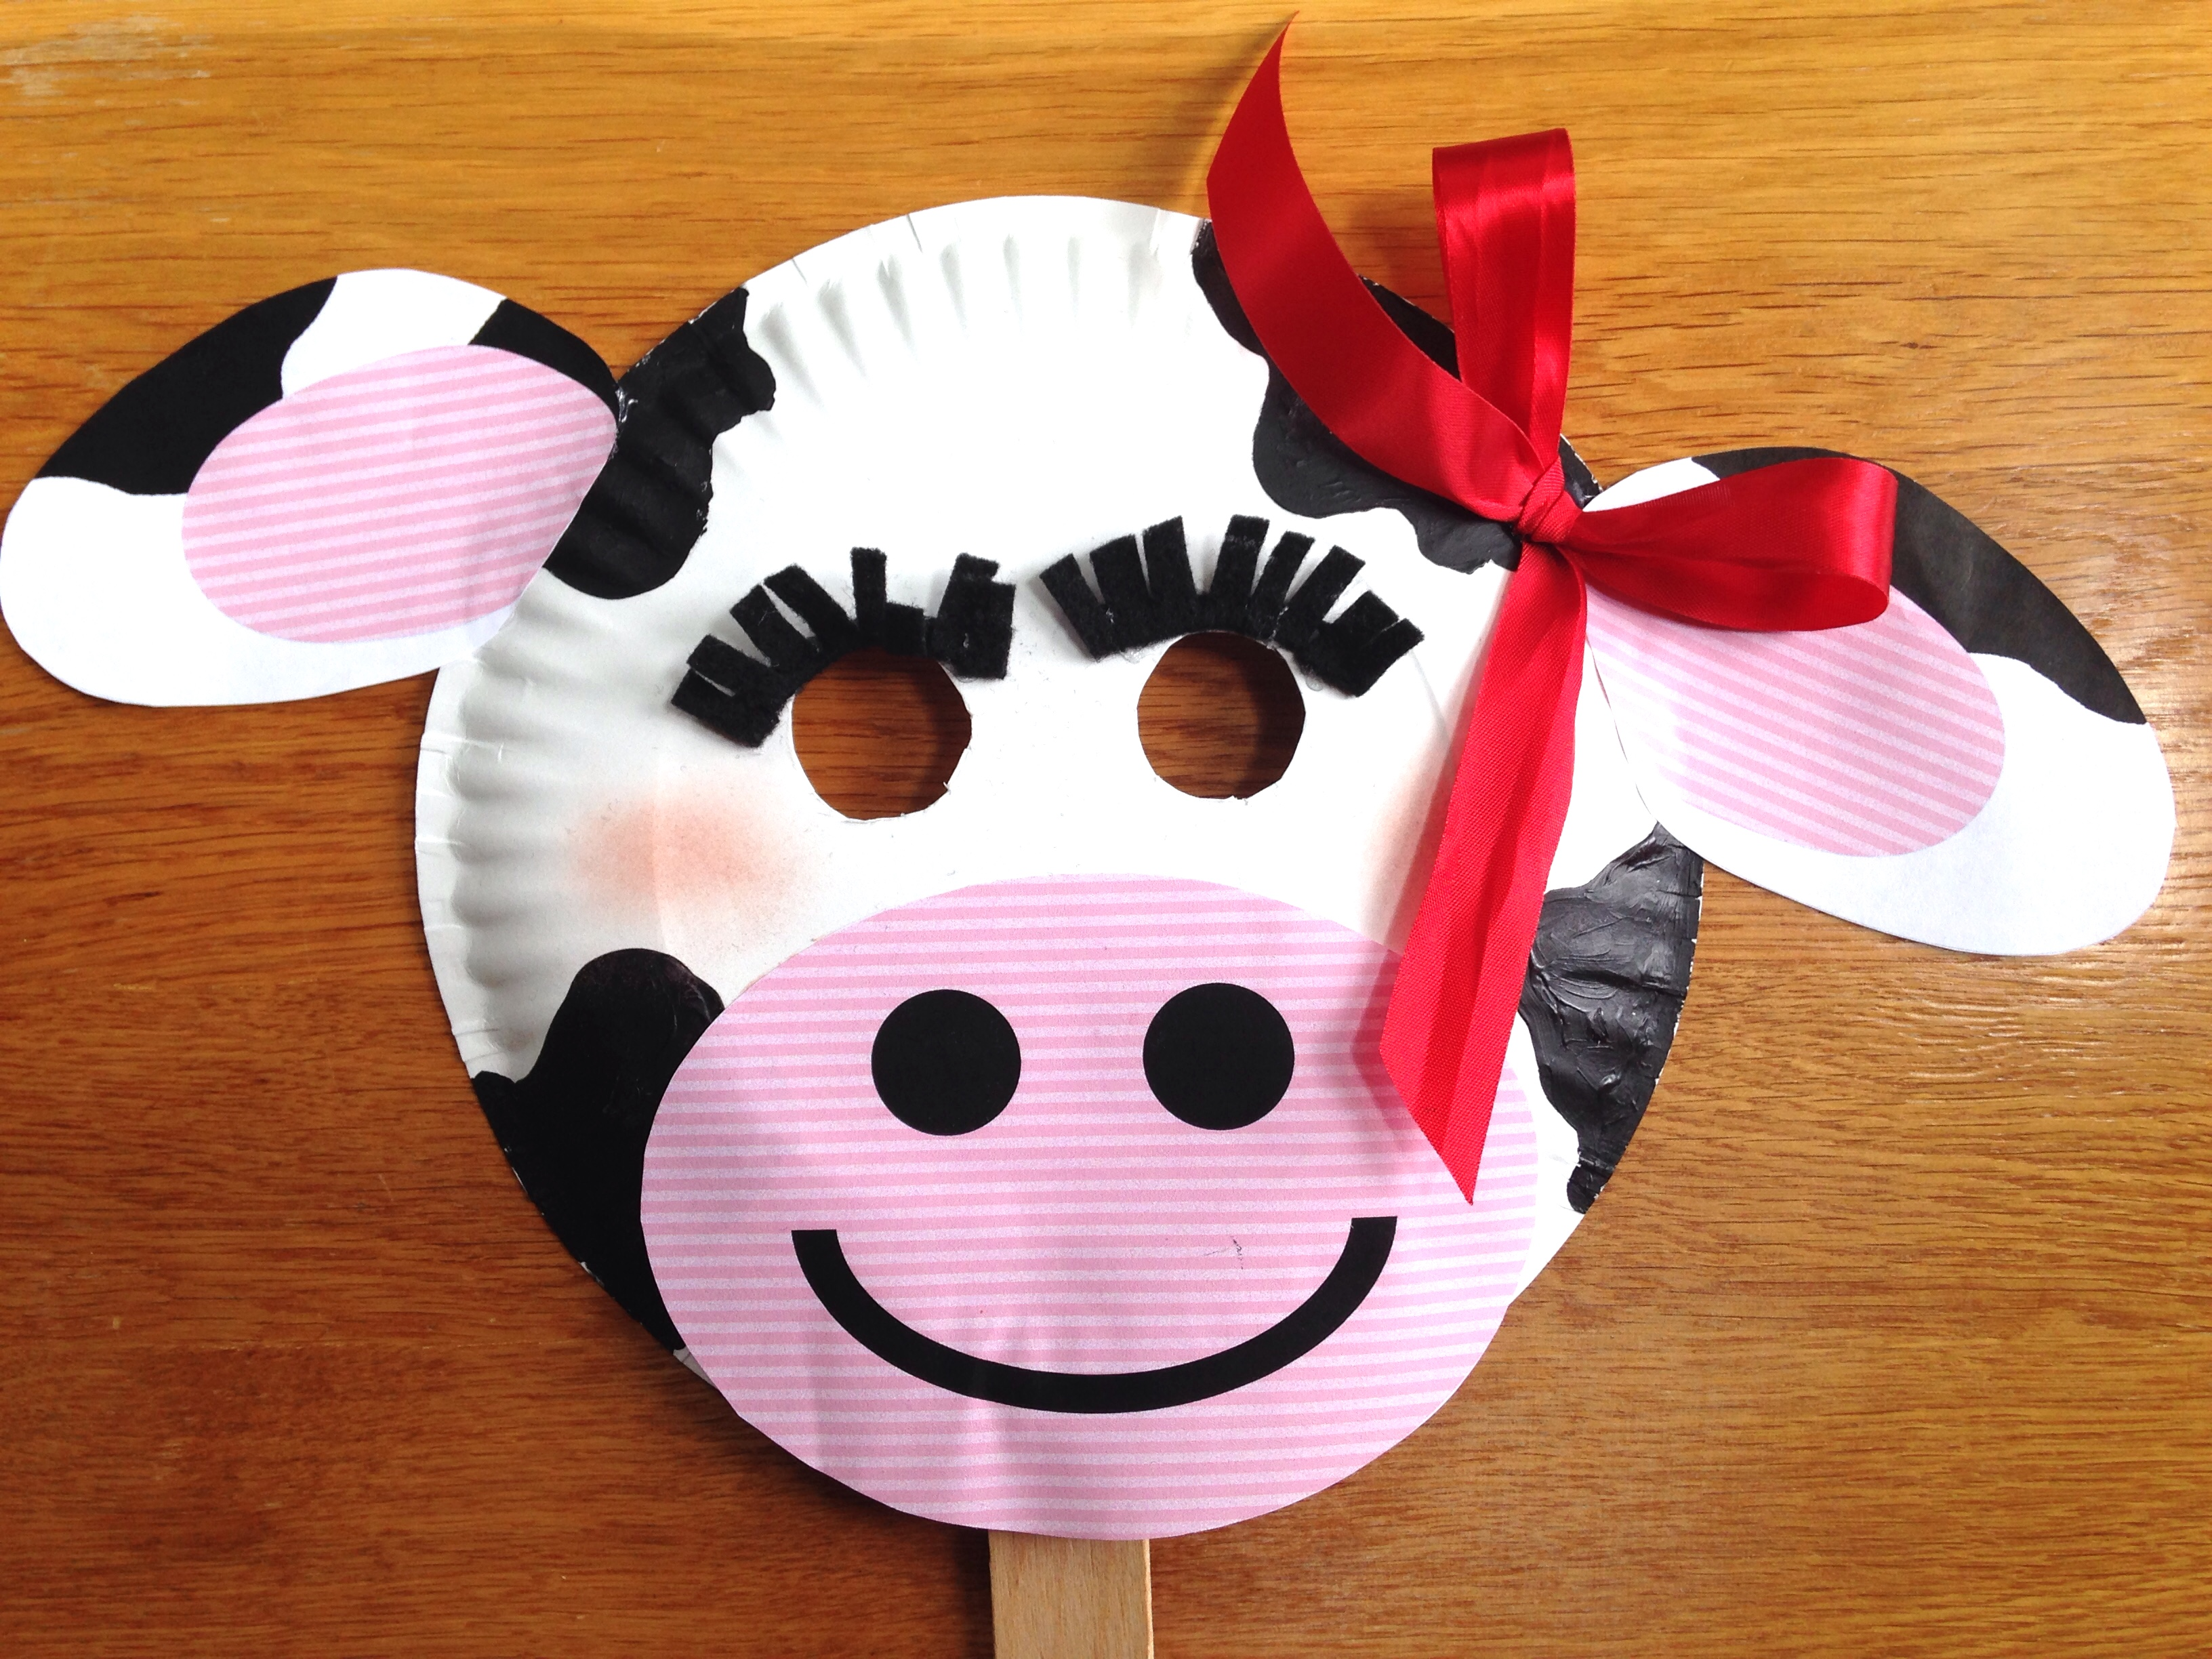 photo relating to Free Printable Cow Mask named Chick-fil-A Cow Working day Paper Plate Cow Masks With Totally free